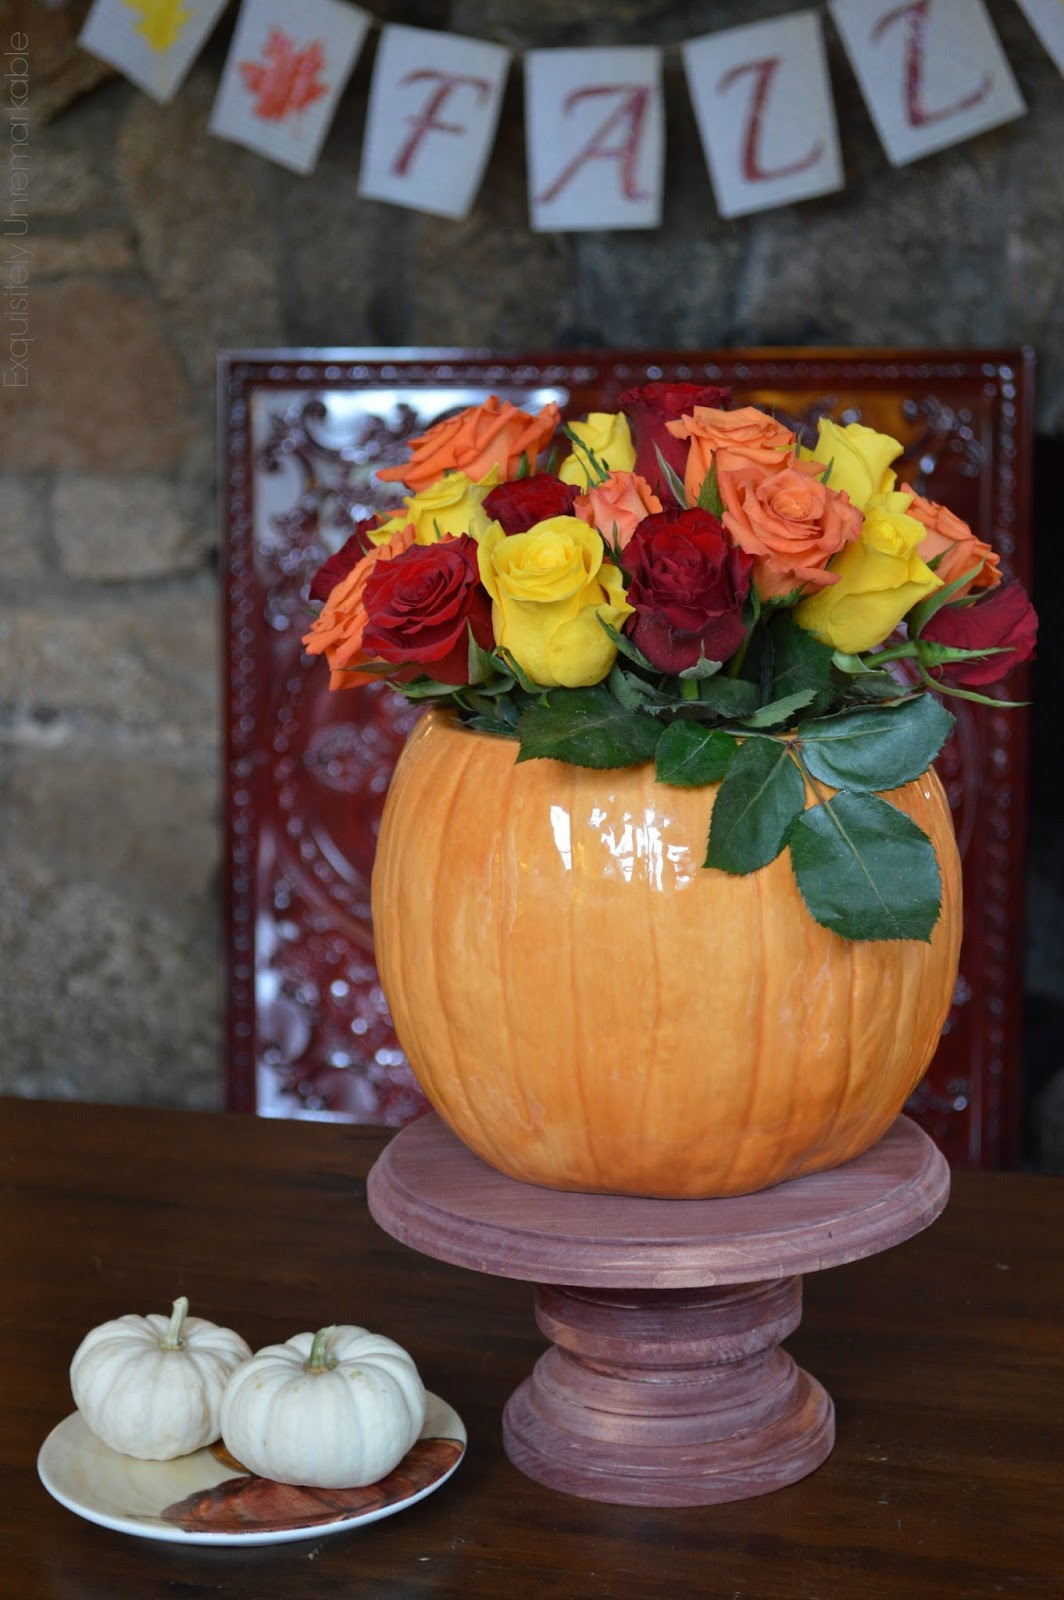 DIY wooden cake stand in fall with cookie jar vase and roses set on table in front of fireplace